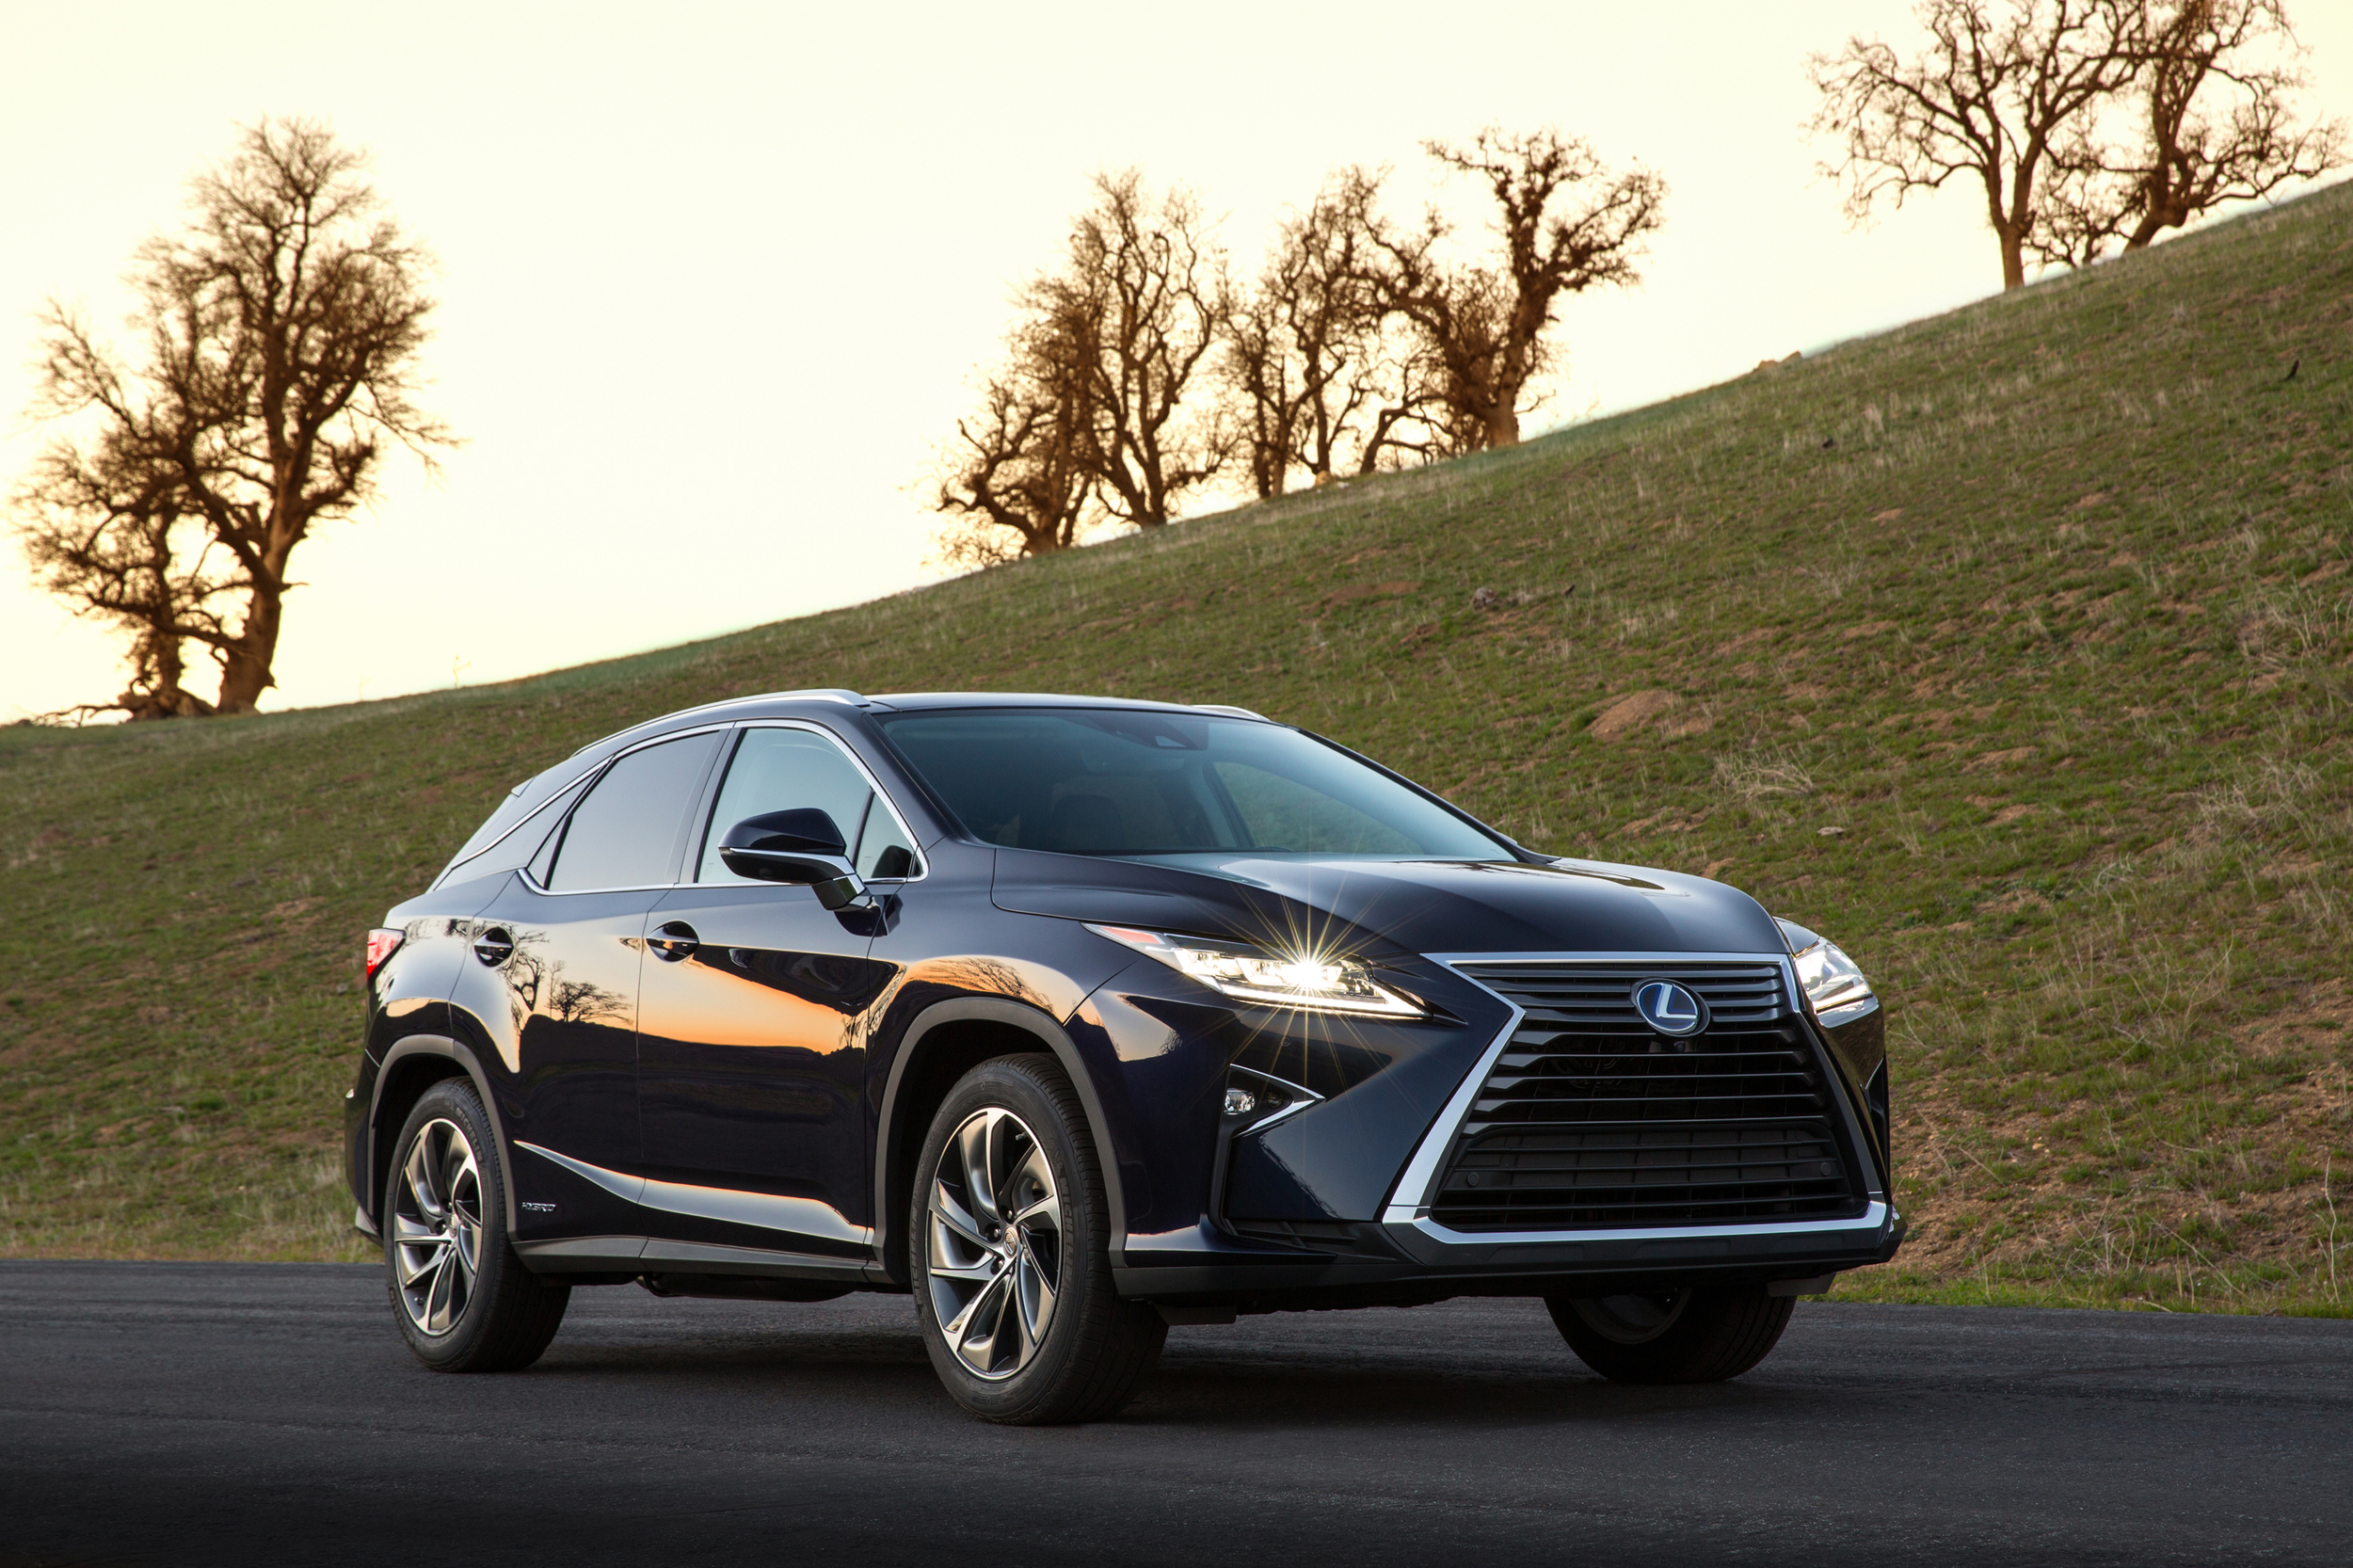 New Lexus Suv >> The New Lexus Rx Debuts Poised To Redefine The Luxury Suv Be